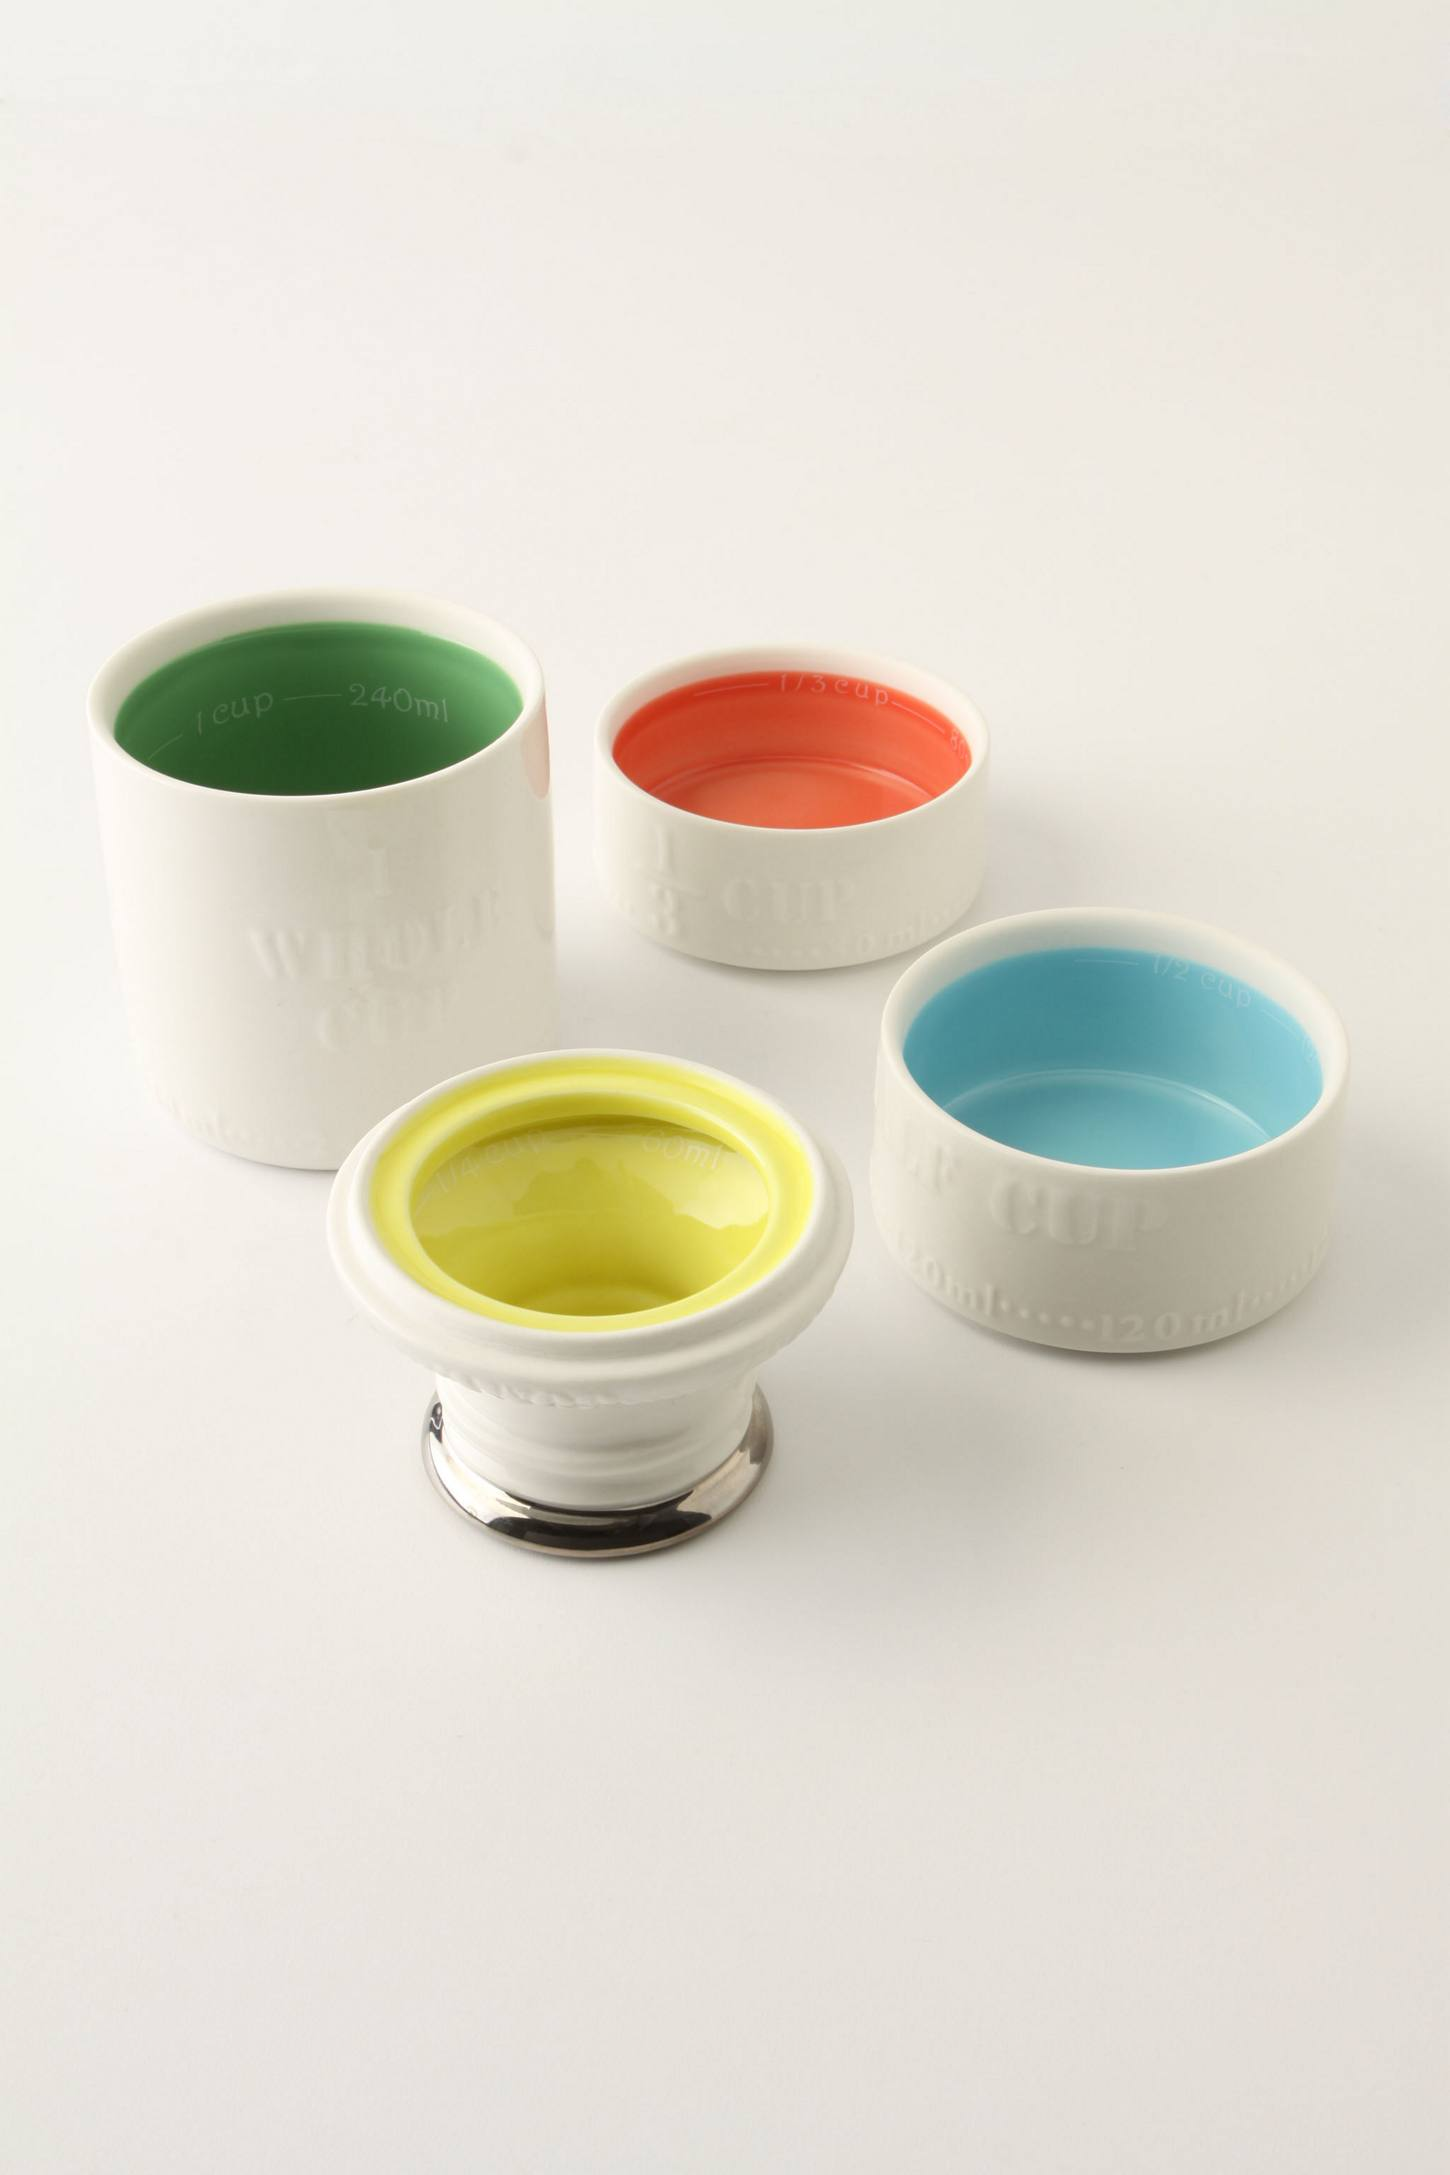 Milk carton measuring cups with colors inside